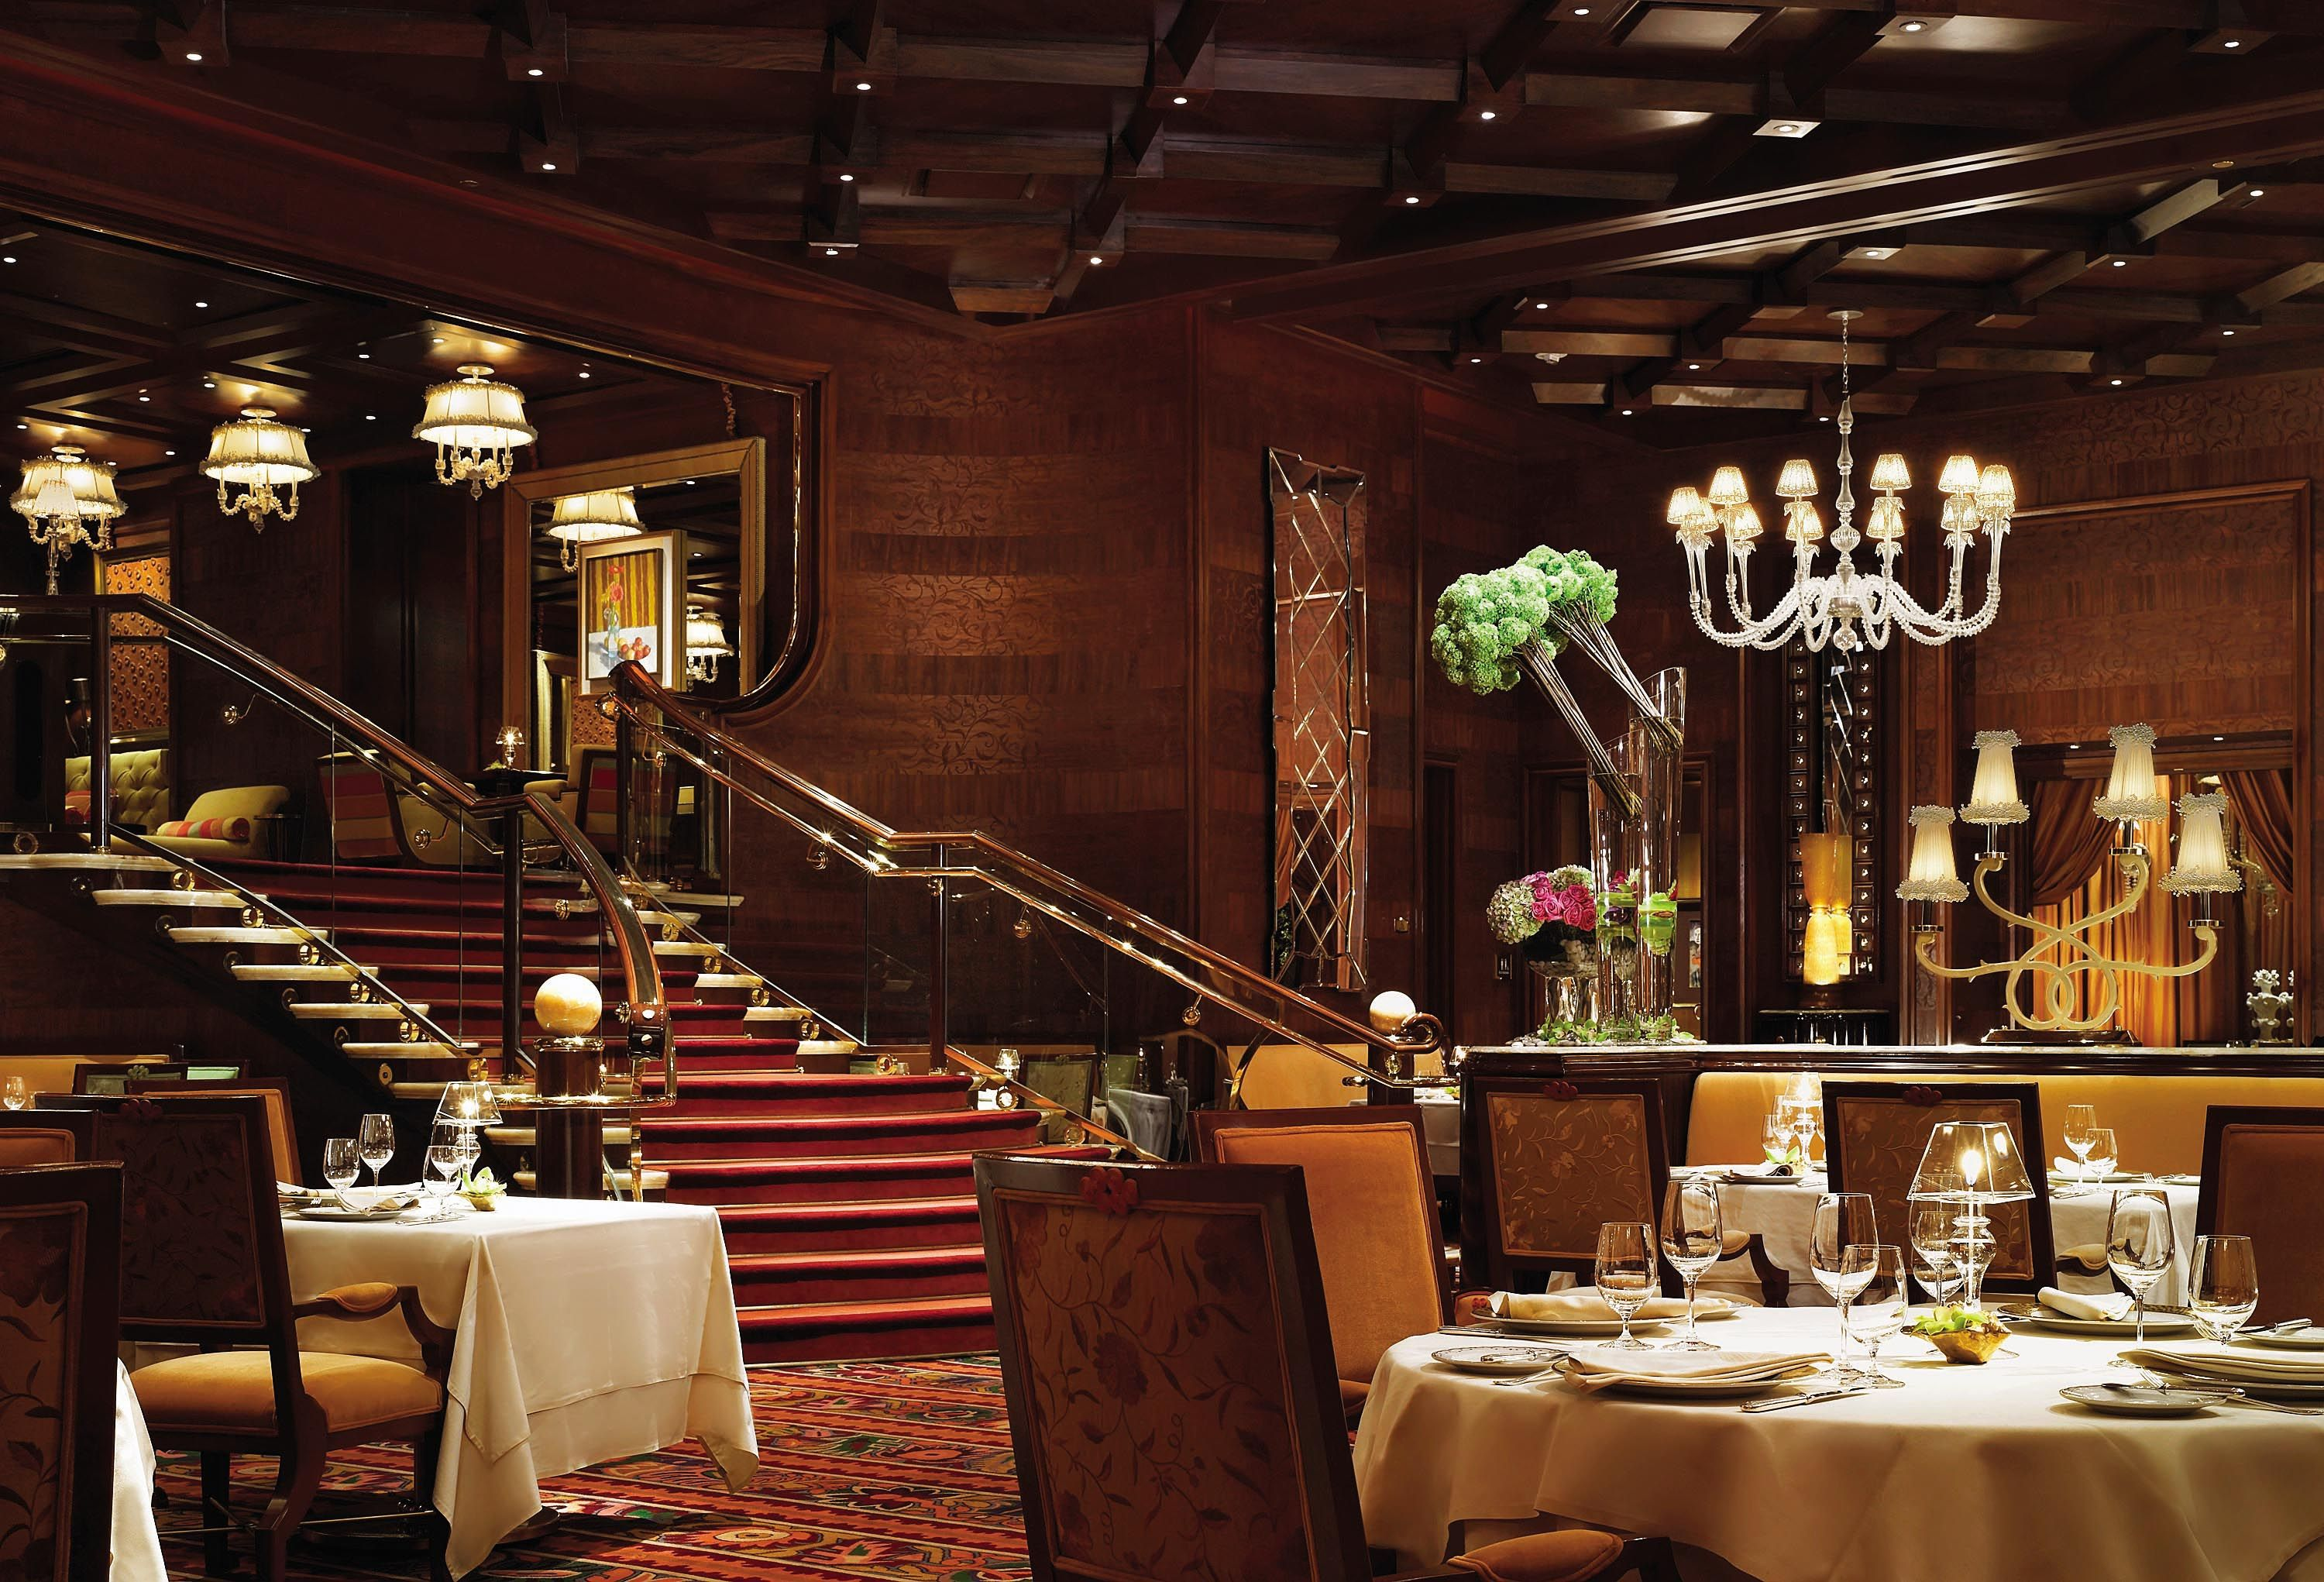 Dining At 5 Star Restaurants Alex Wynn Las Vegas Restaurant Interior DesignRestaurant